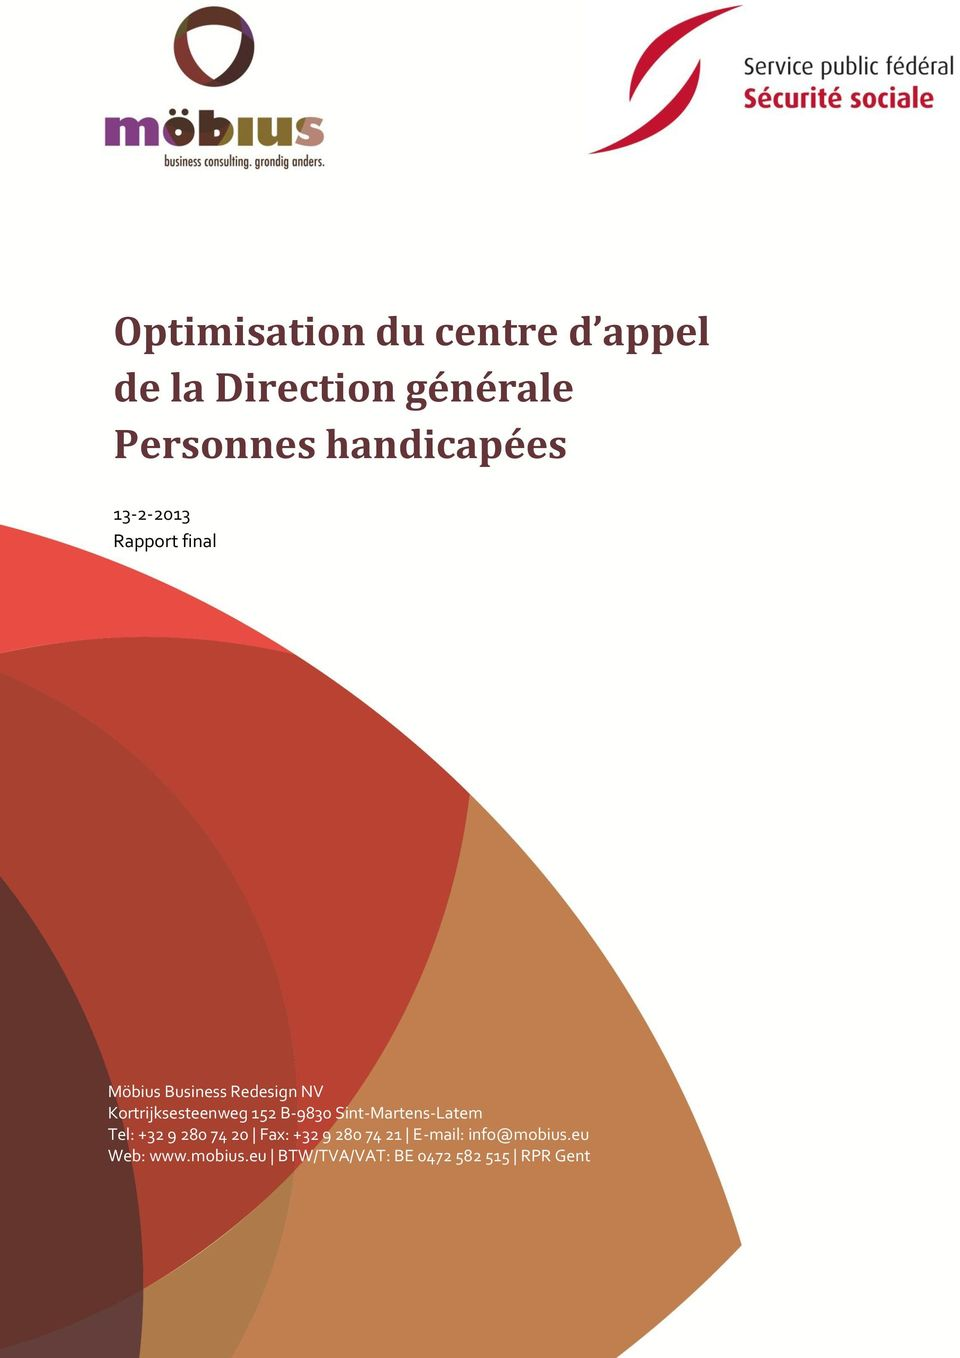 eu BTW/TVA/VAT: BE 0472 582 515 RPR Gent Optimisation du centre d appel de la Direction générale